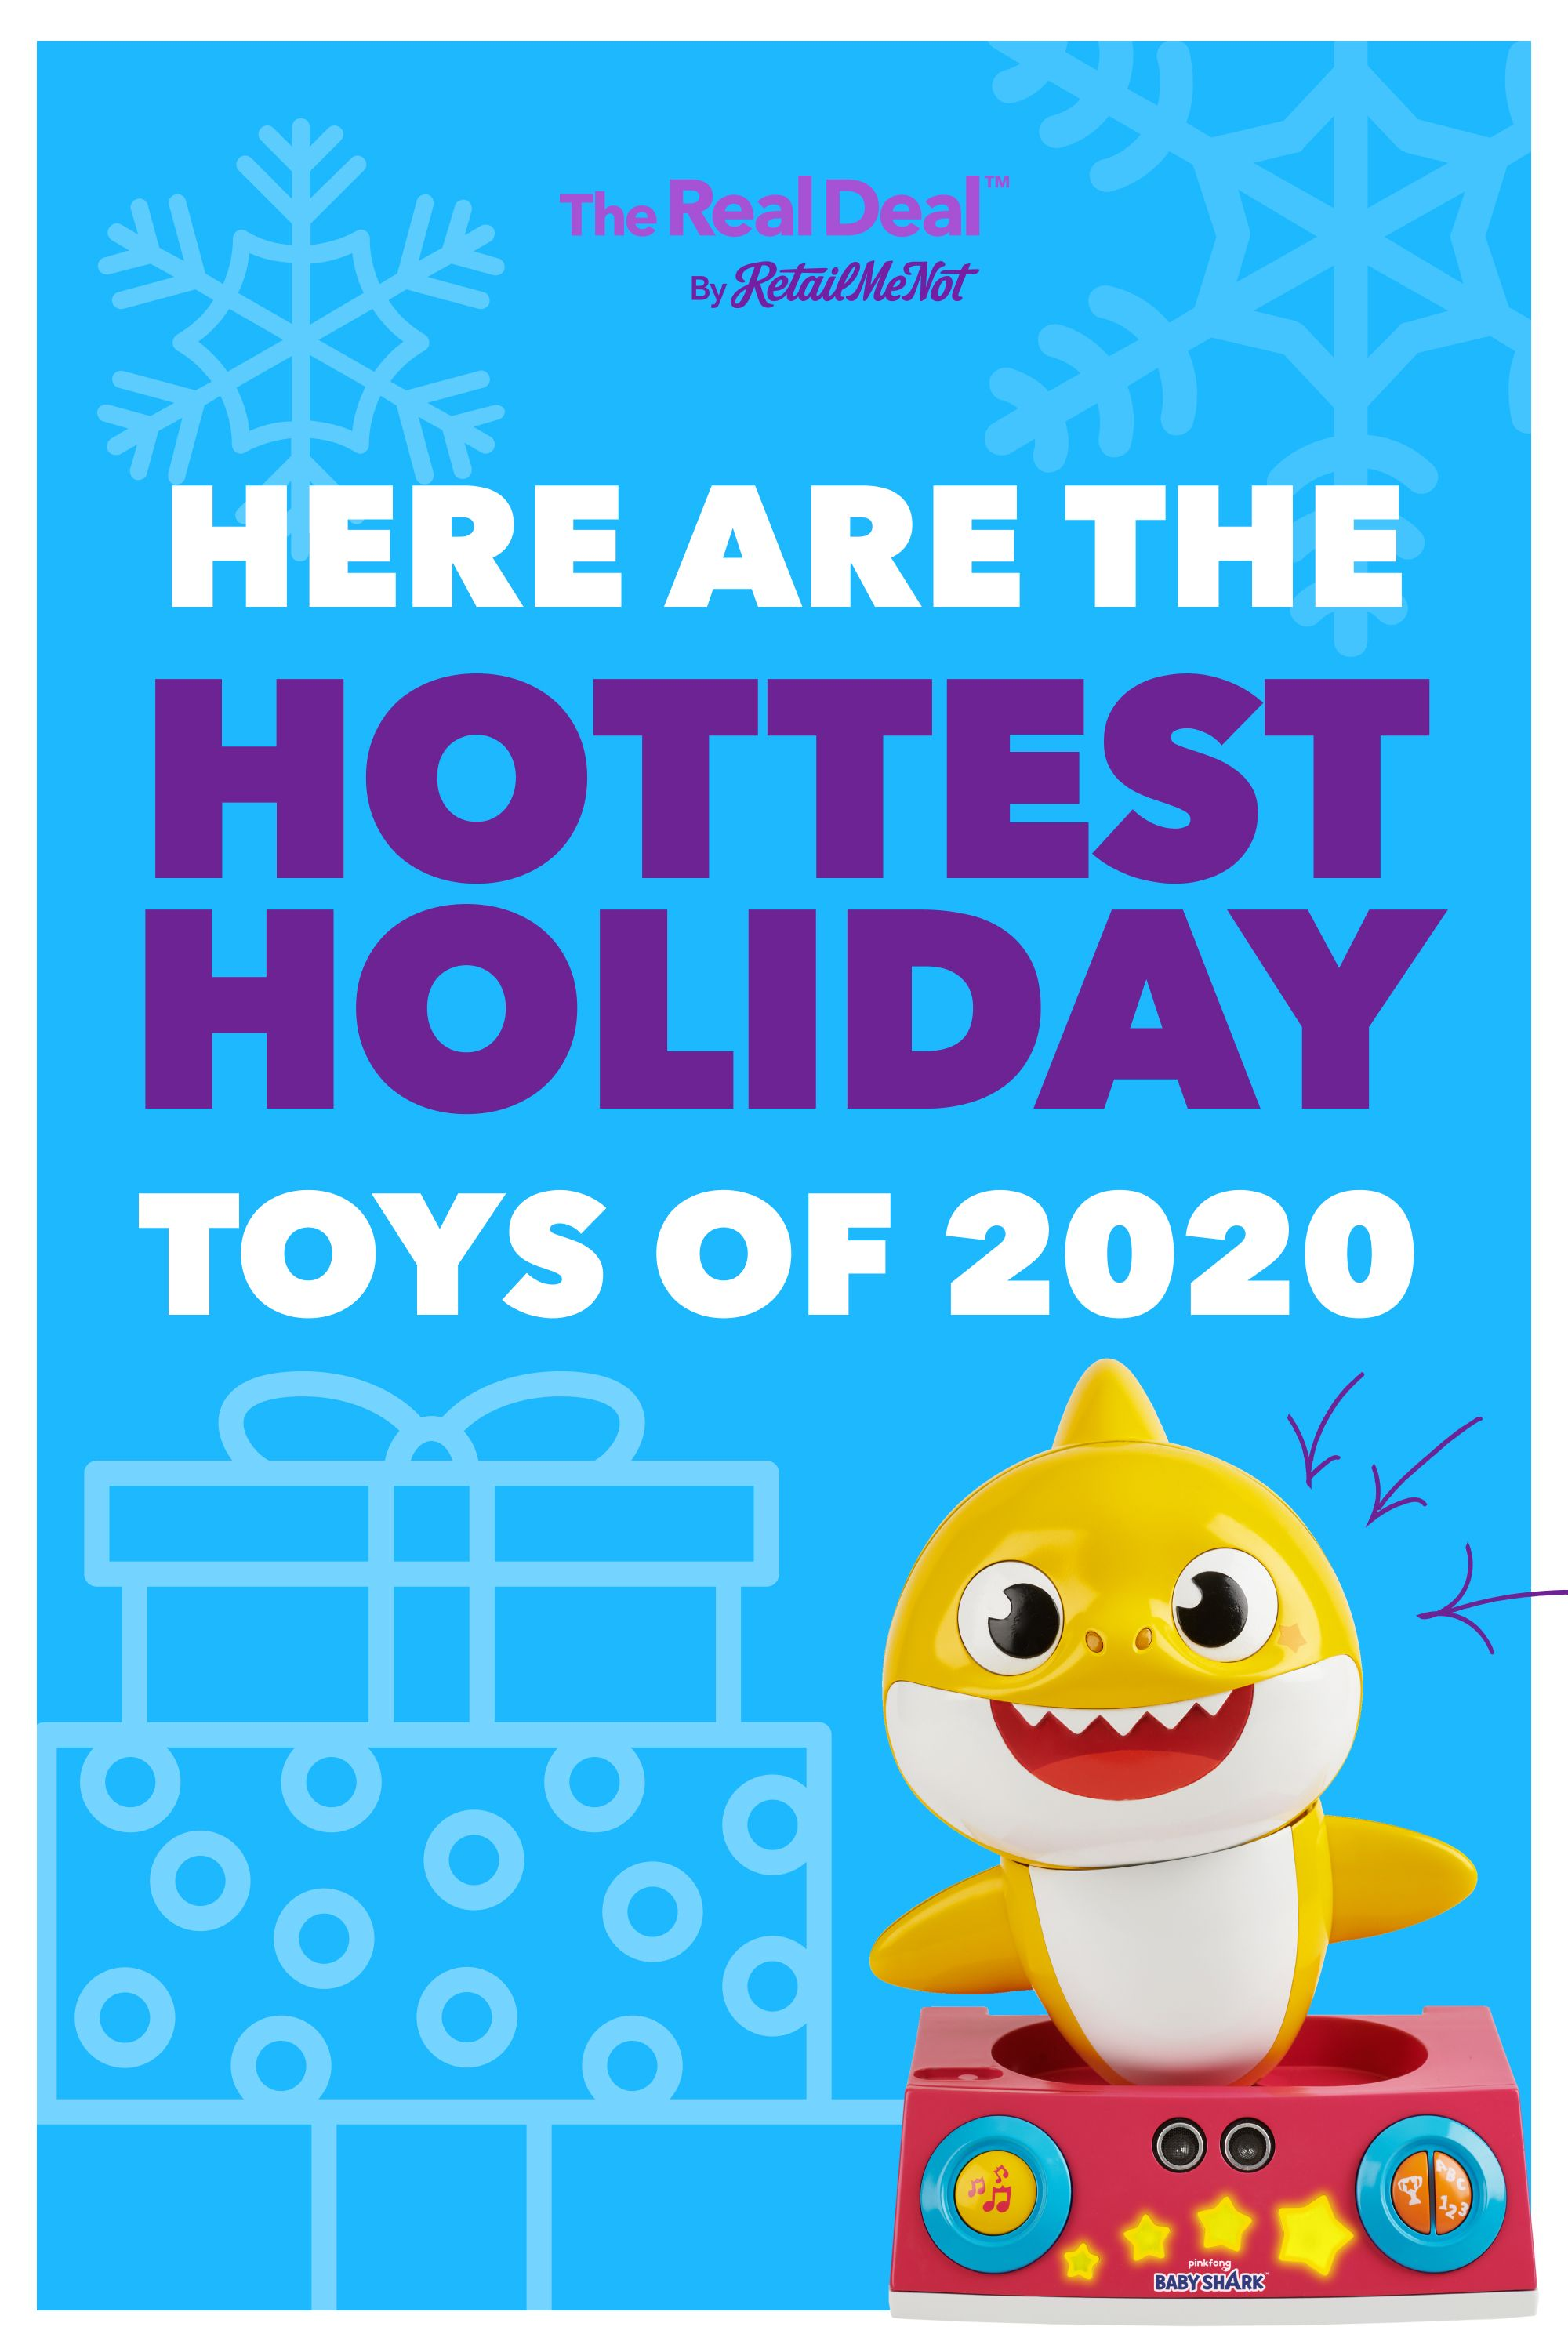 The Ultimate List Of 2020 Hot Holiday Toy Predictions By Retailmenot In 2020 Holiday Toys Cool Toys For Boys Kids Toy Gifts